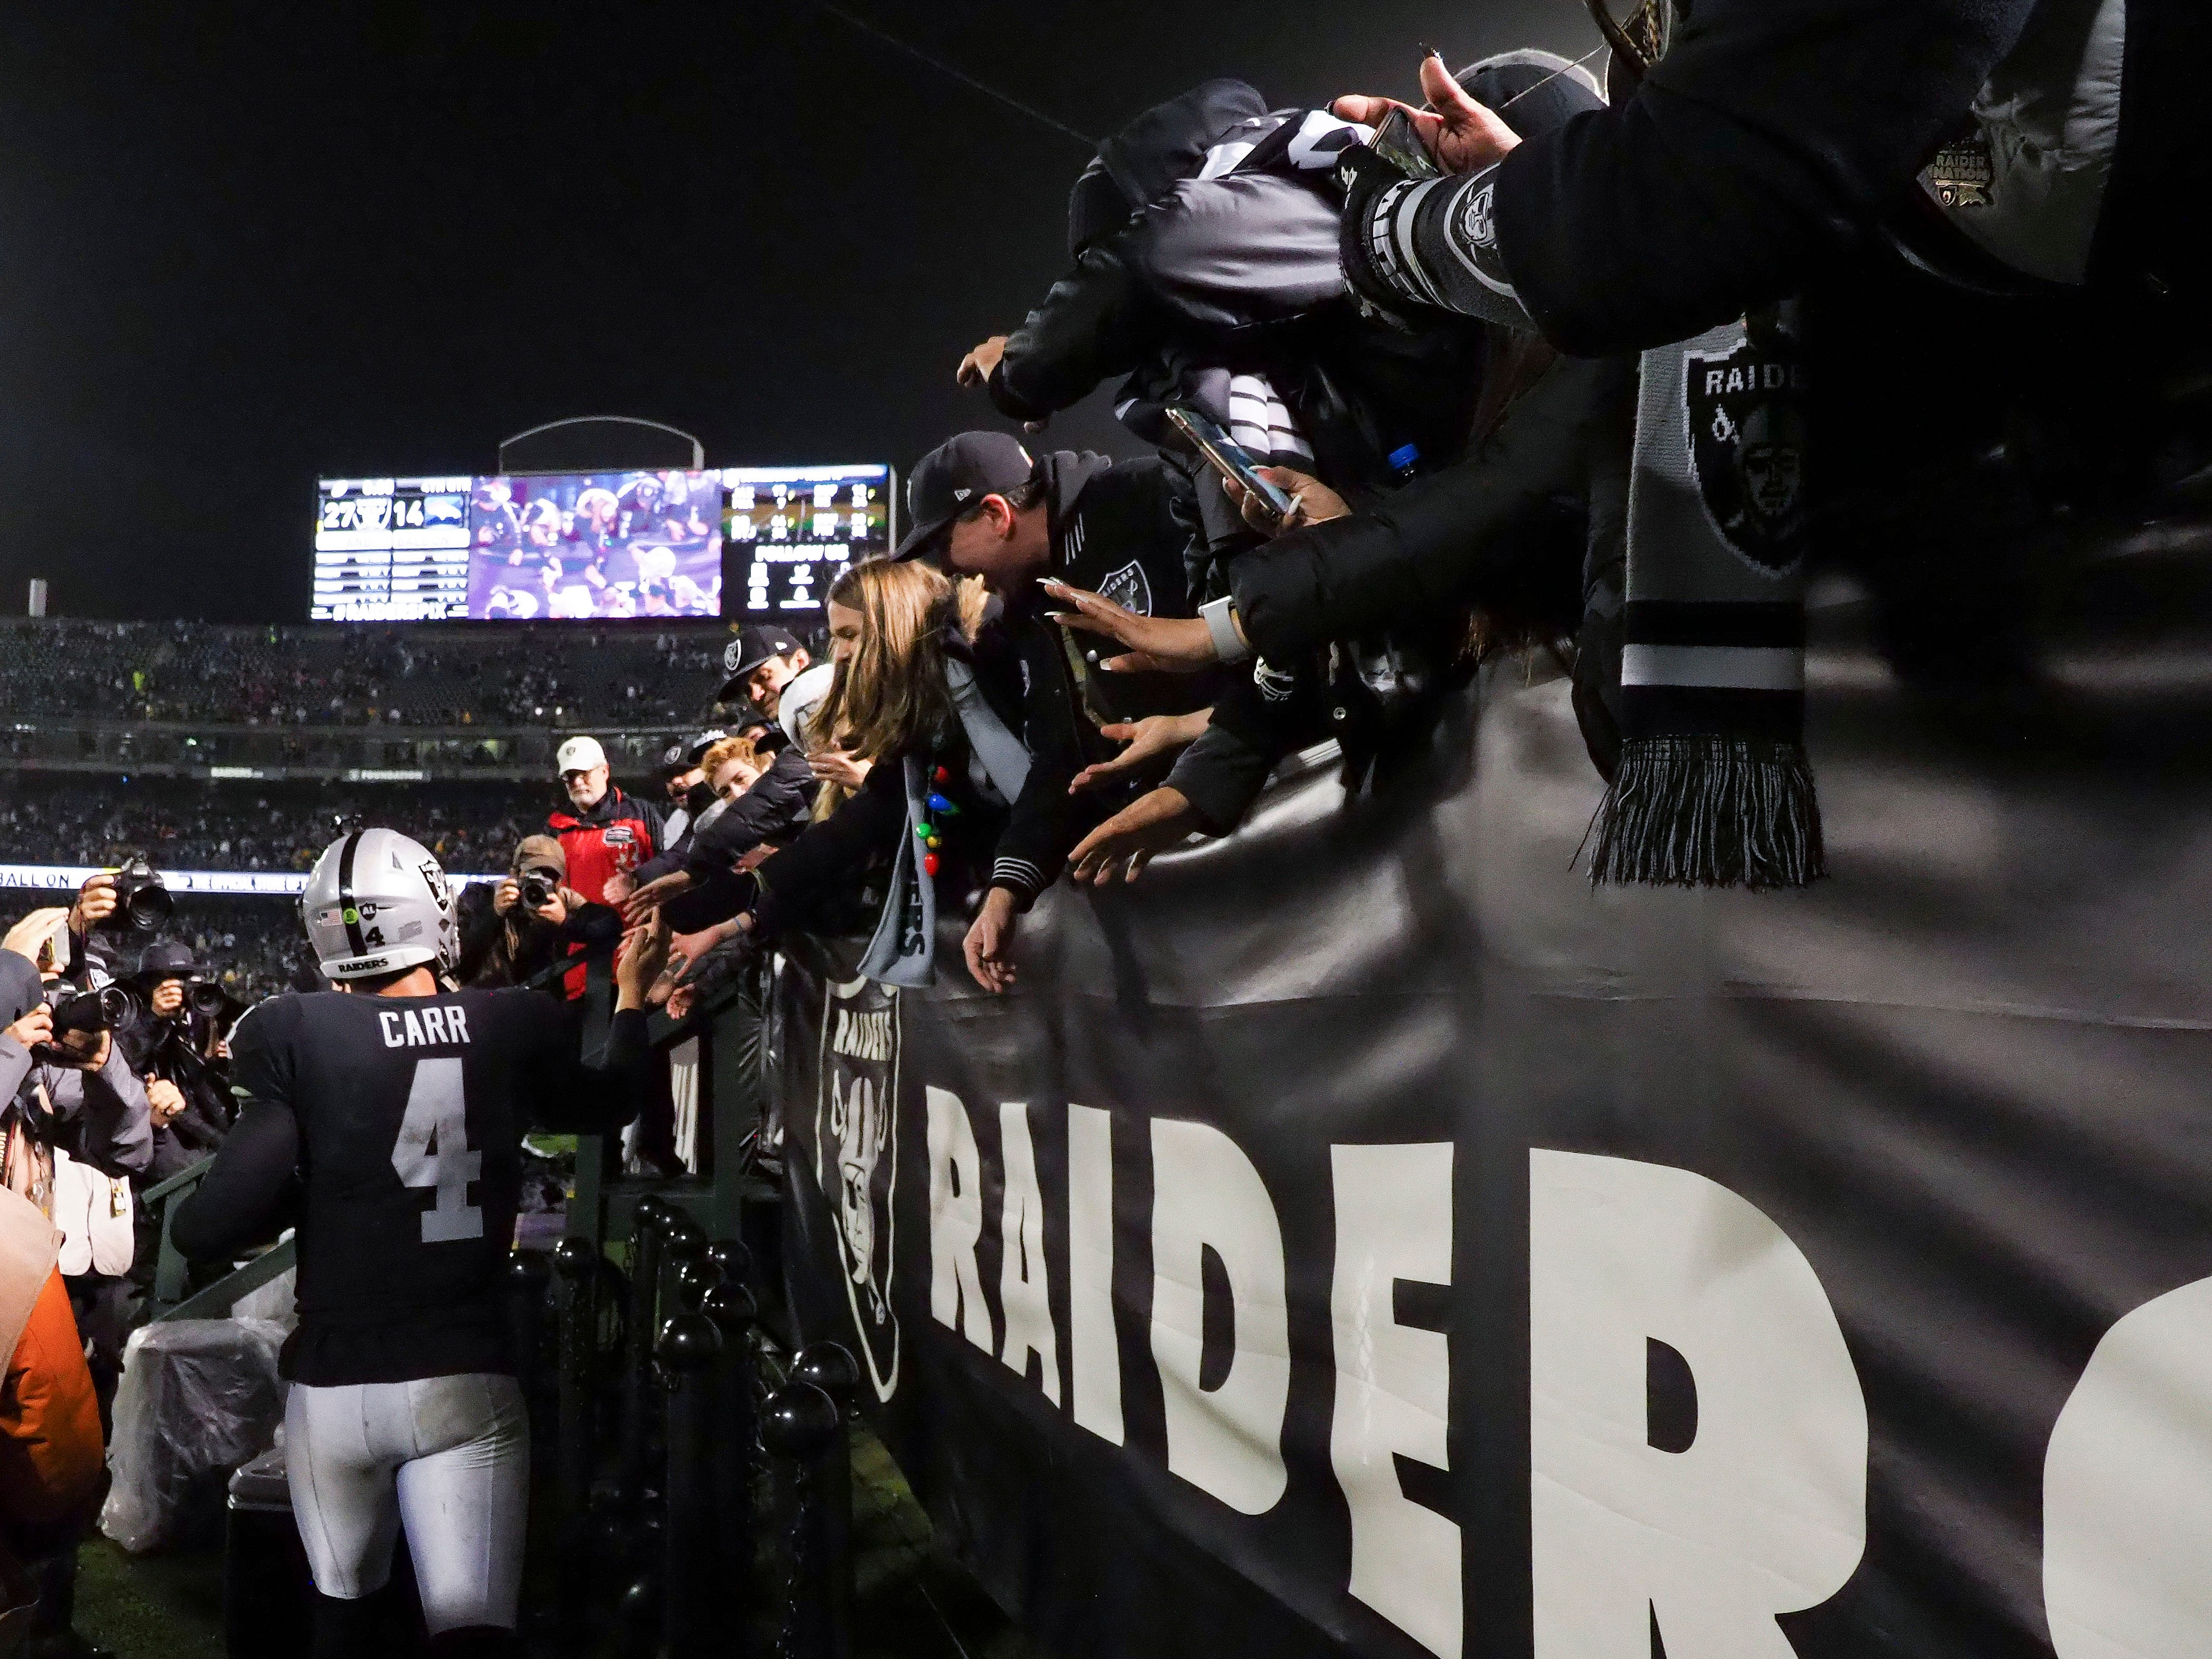 Raiders quarterback Derek Carr walks the perimeter of the field to high-five fans after the game against the Denver Broncos at Oakland Coliseum.